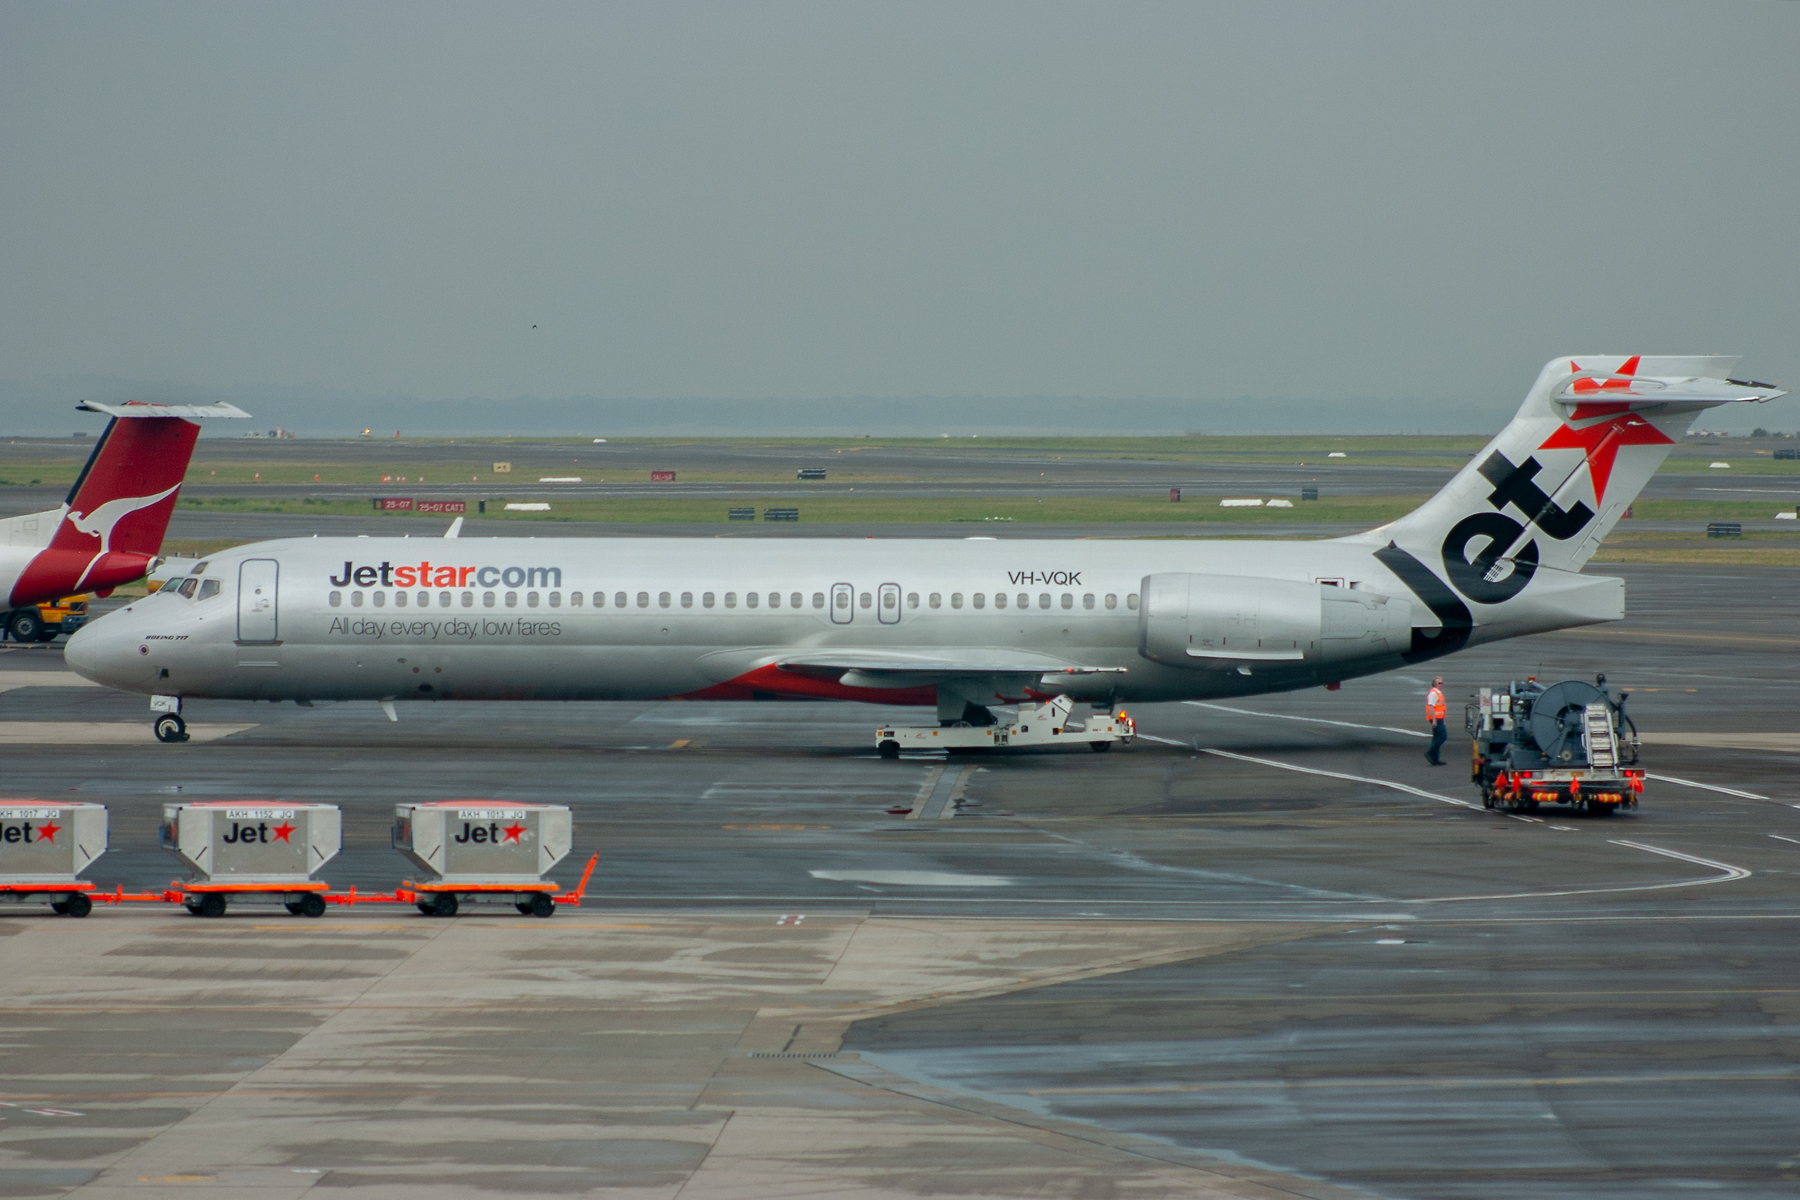 Jetstar Airways Boeing 717-200 VH-VQK at Kingsford Smith